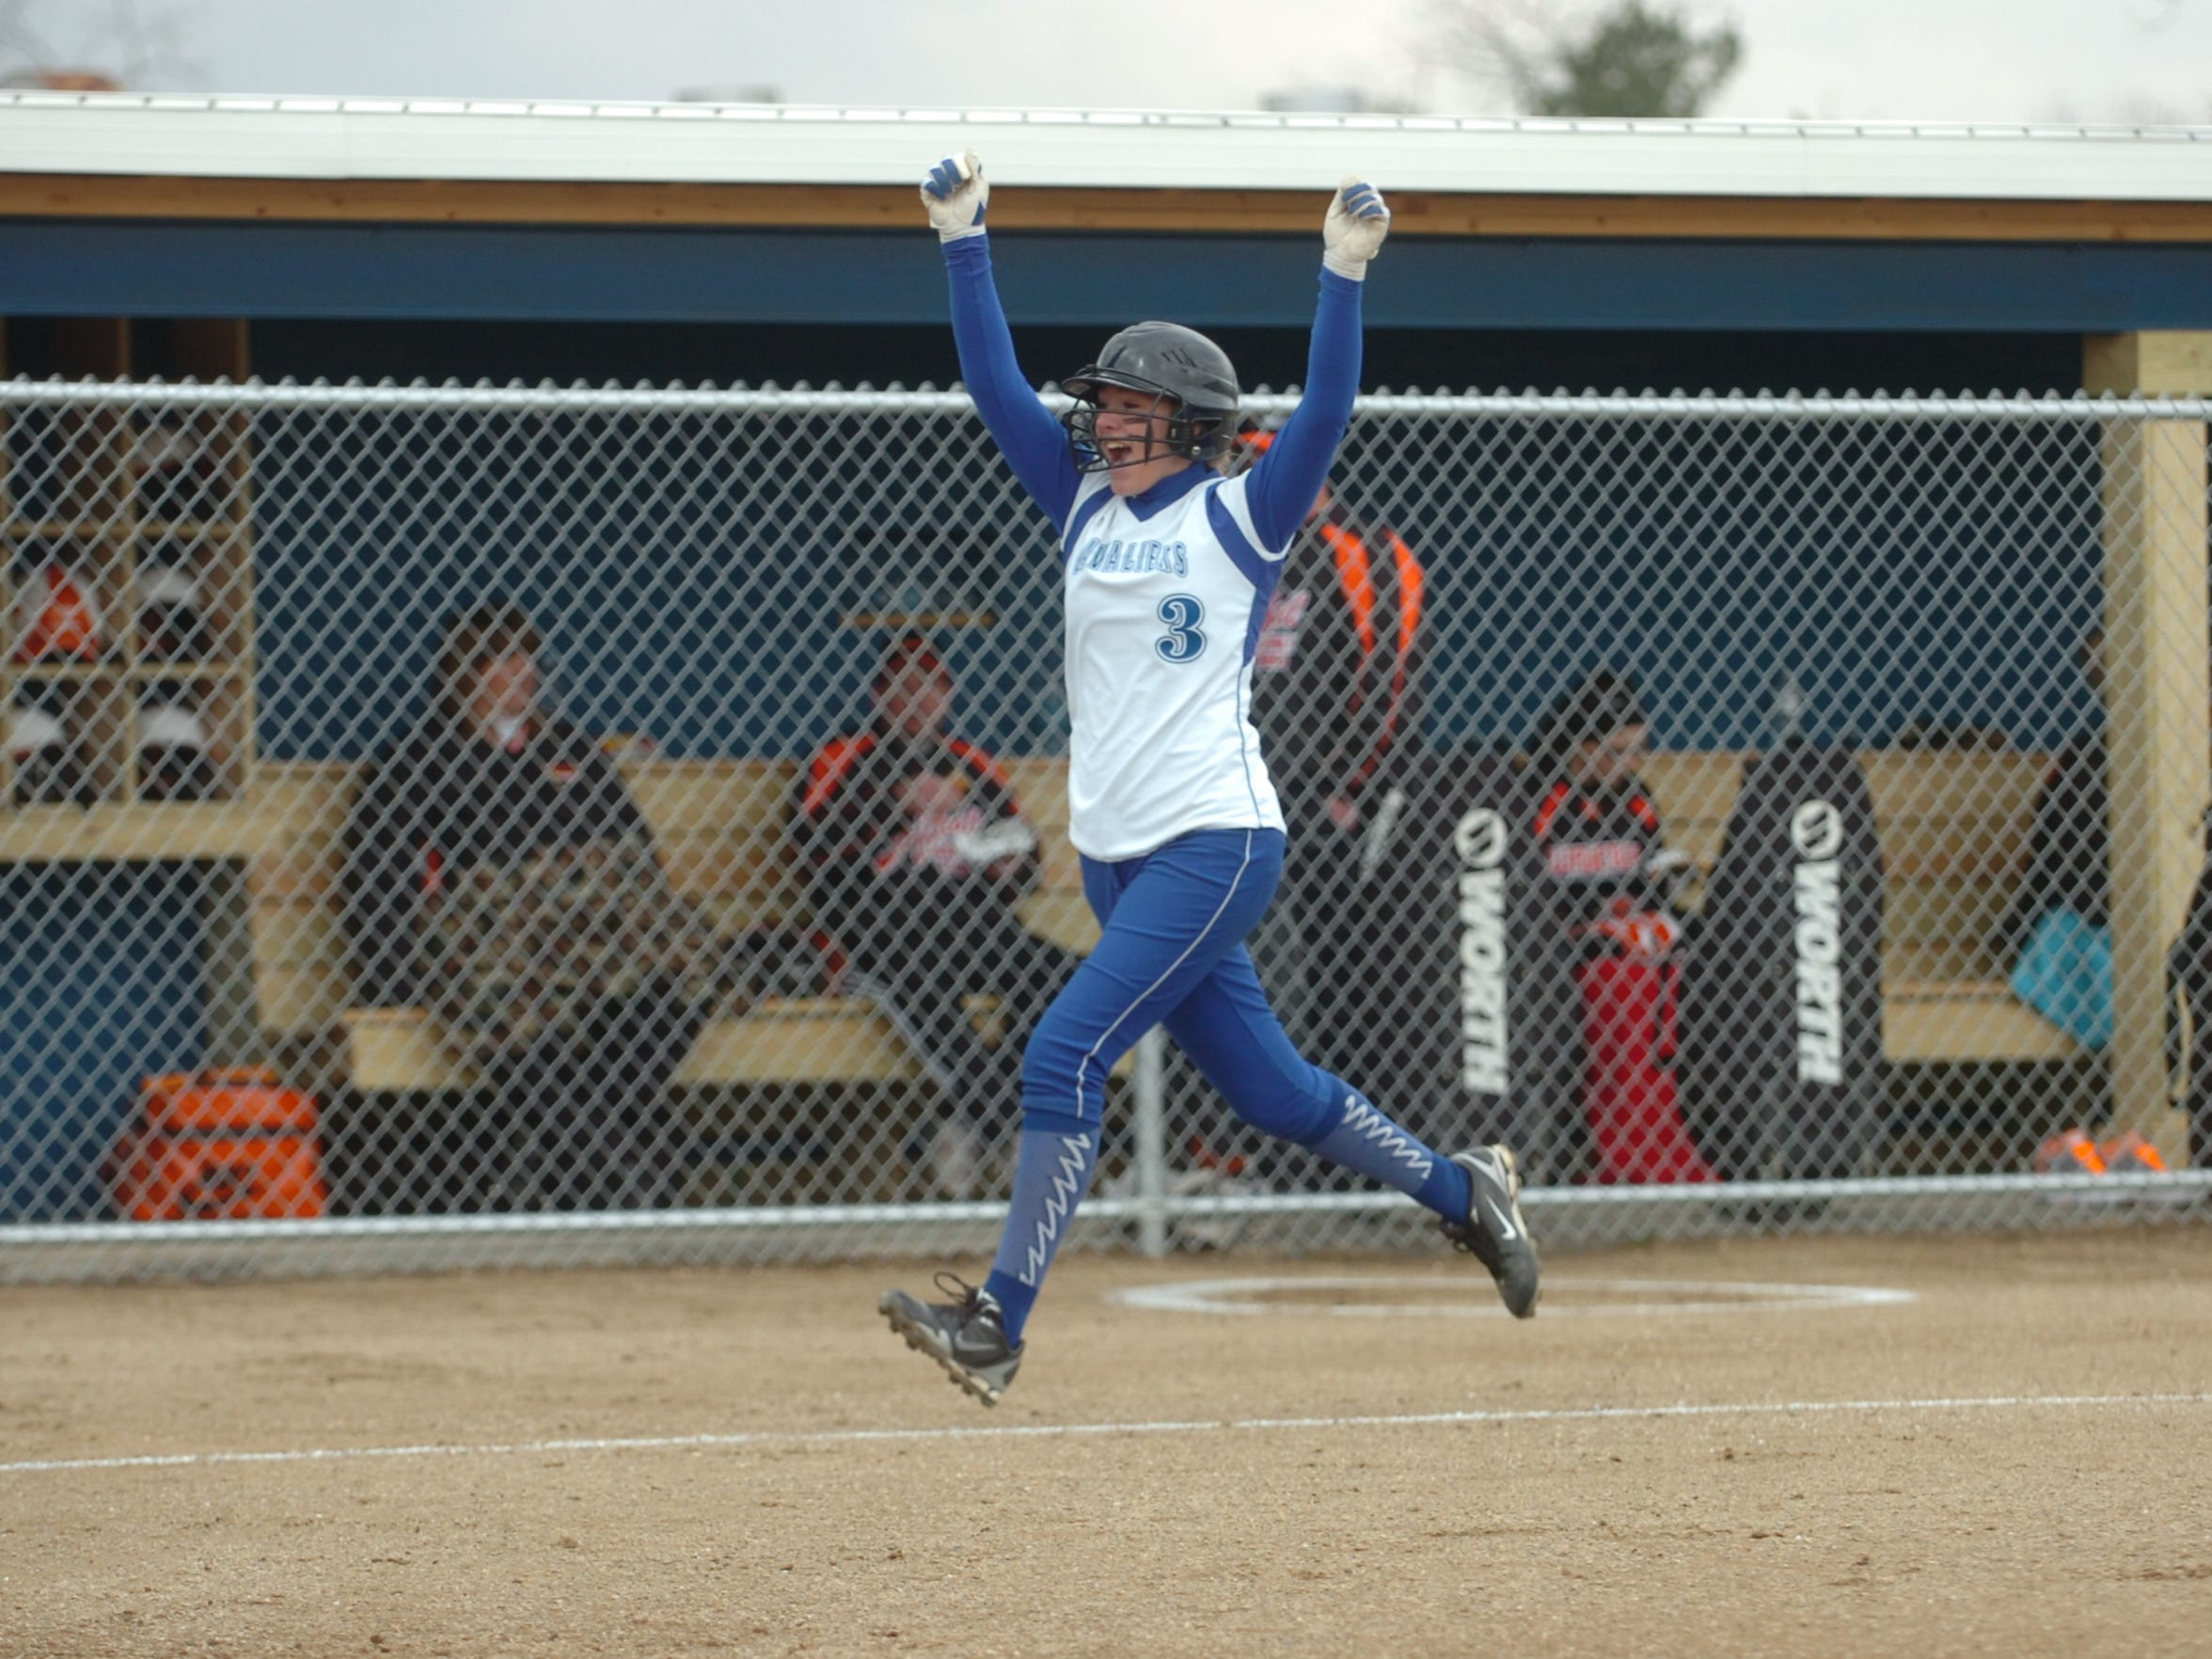 Chillicothe's Marissa Webb celebrates after hitting a home run against Waverly on April 2, 2010. The contest was the Cavaliers' first at Lady Cavalier Field.